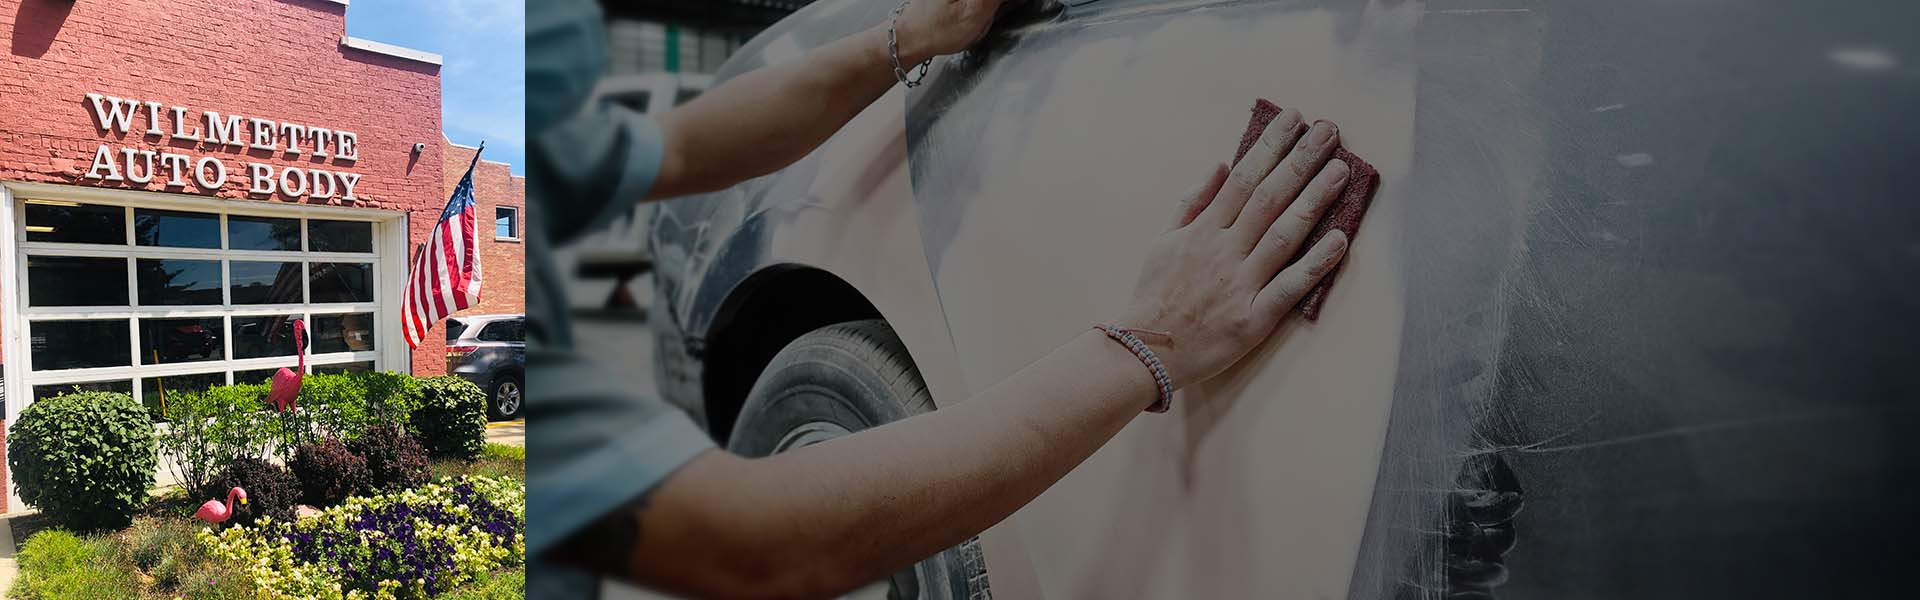 Collision Repair in Wilmette Illinois by Wilmette Auto Body